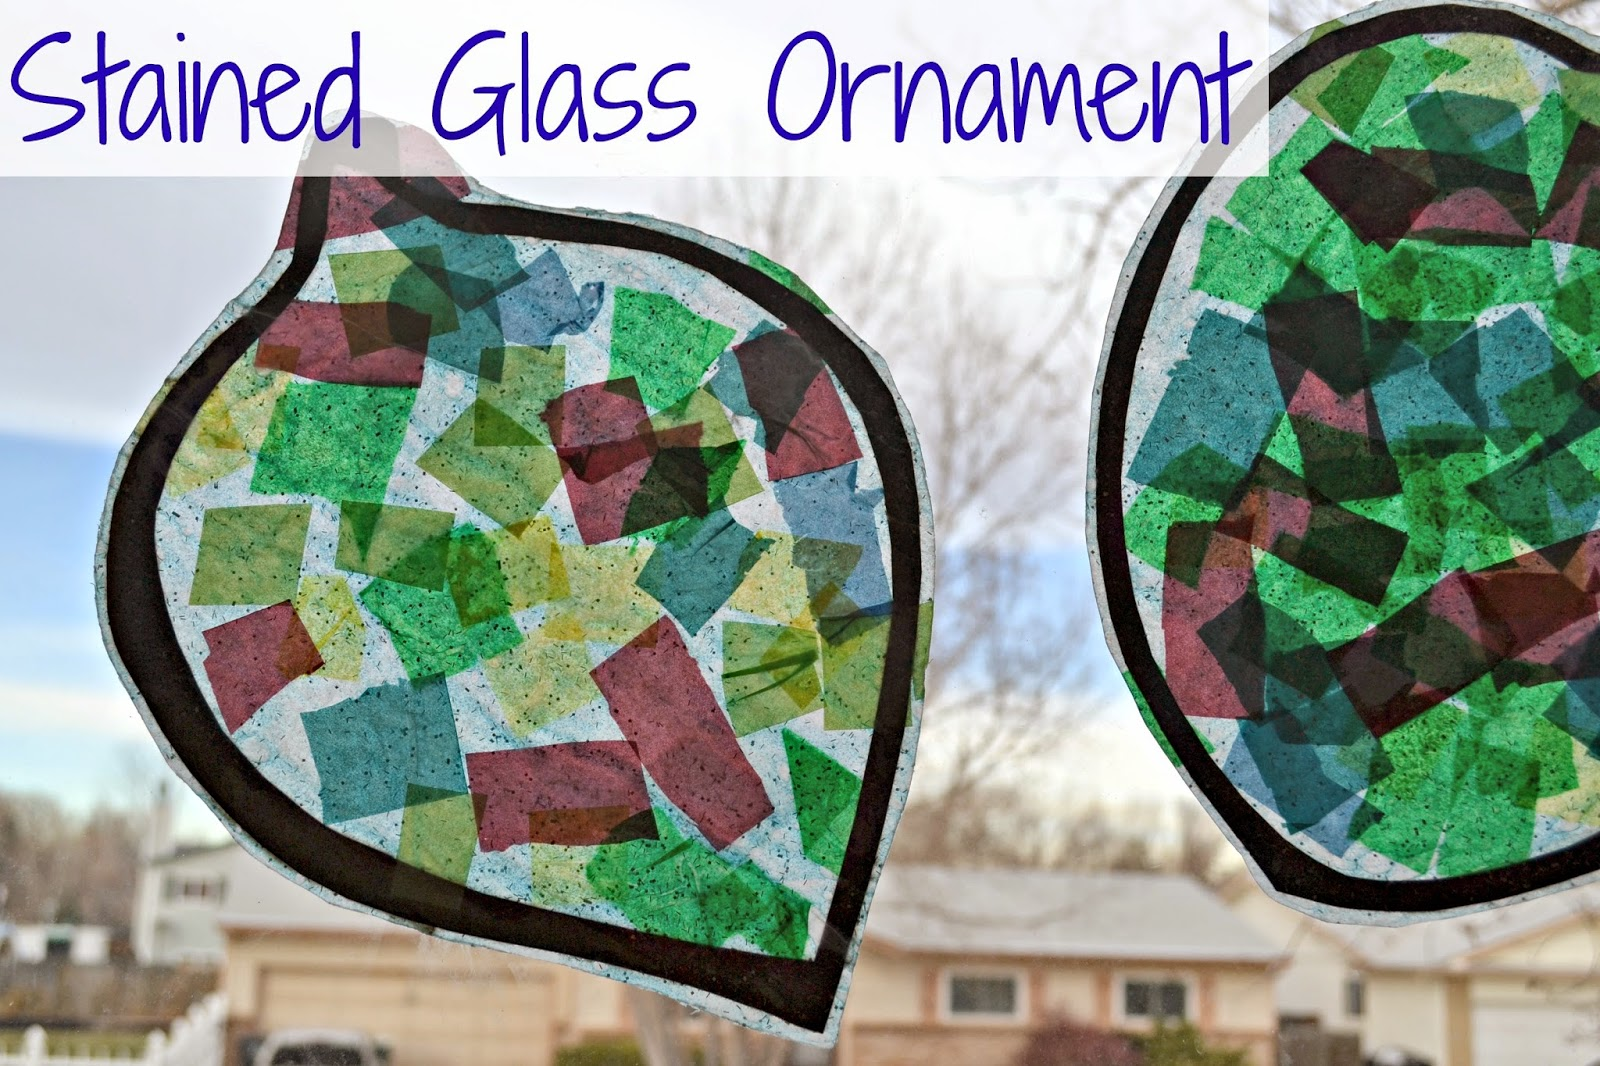 Stained glass ornament preschool christmas craft idea for Christmas crafts for pre schoolers